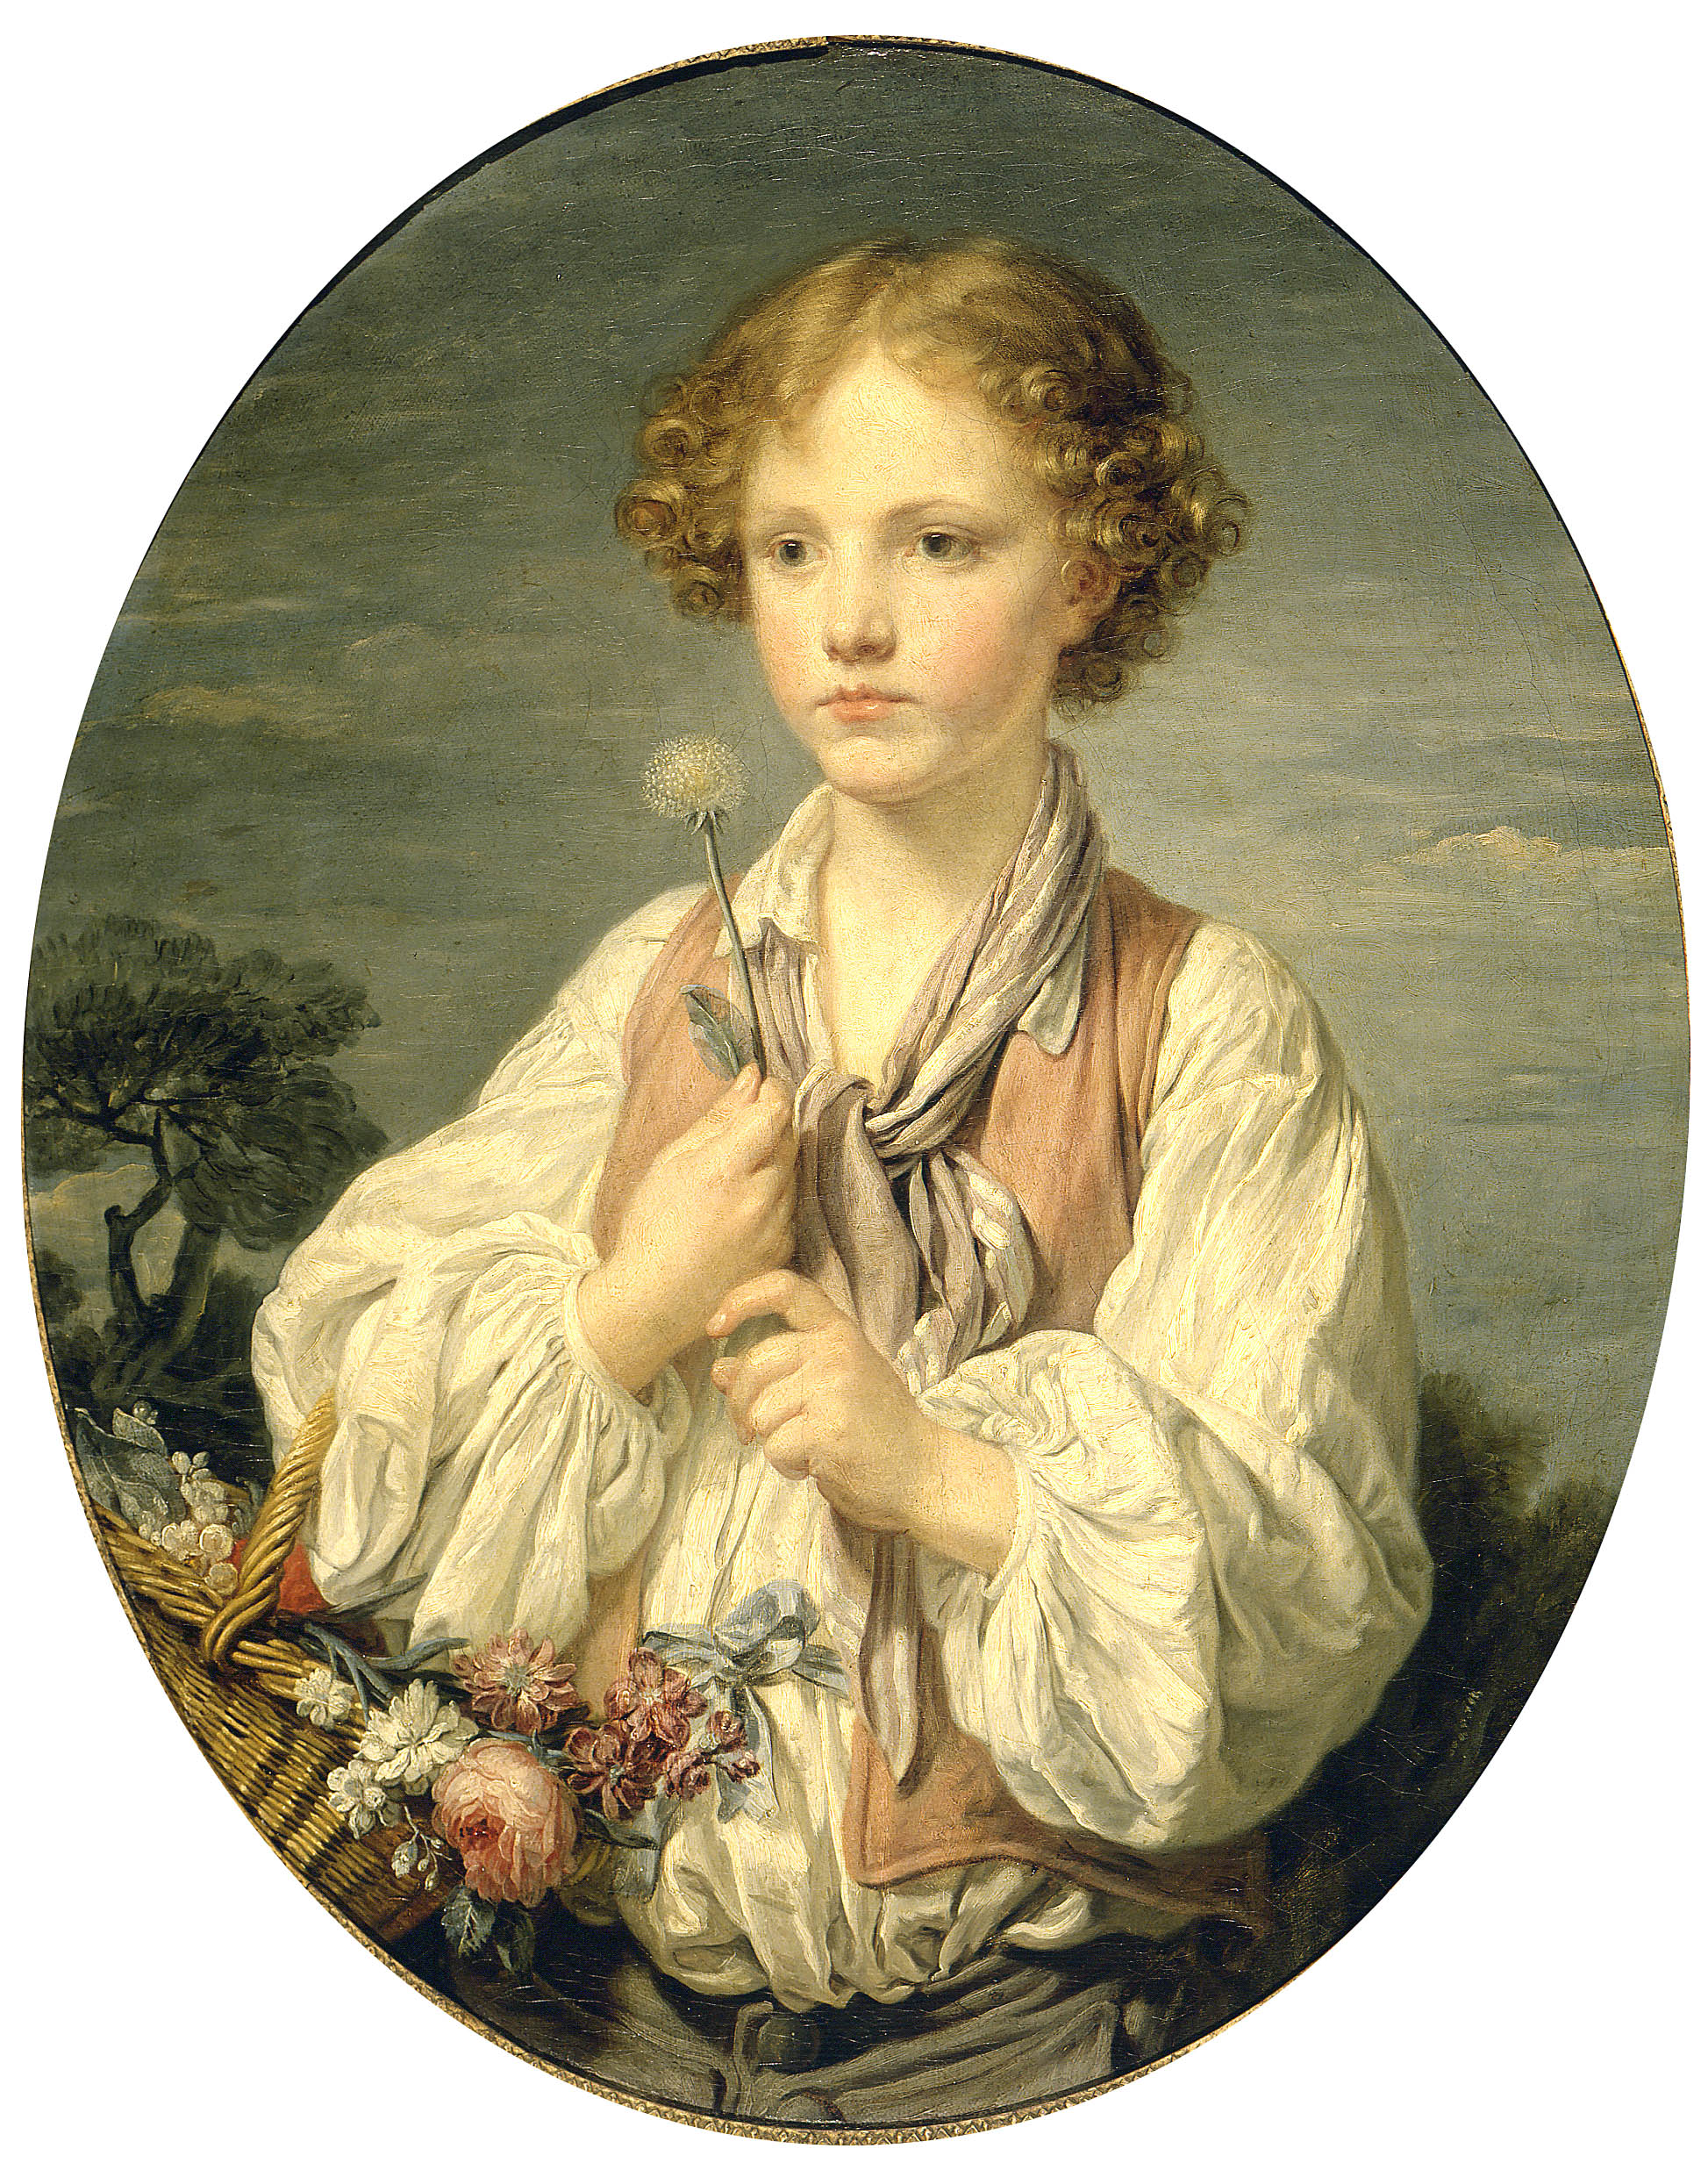 Jean-Baptiste Greuze - Young Shepherd Holding a Flower